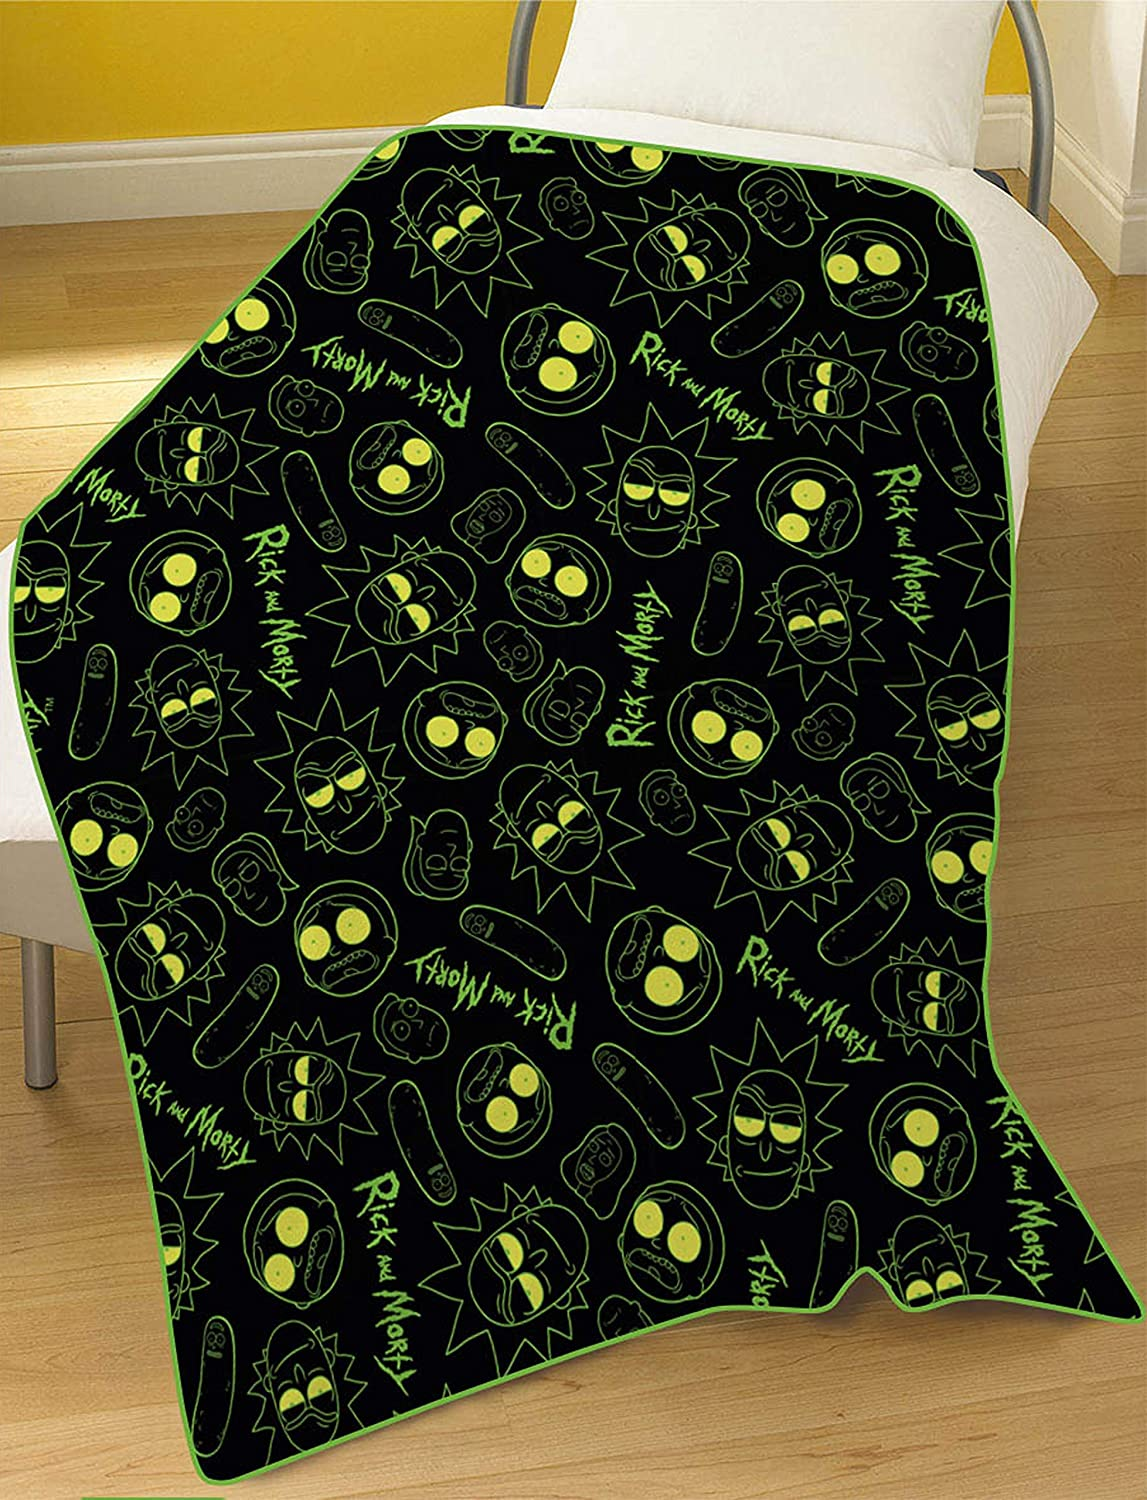 Rick & Morty Blanket, Polyester, Multi-Colour, 100x150cm Dreamtex Ltd FB2-RAM-ELE-M-24